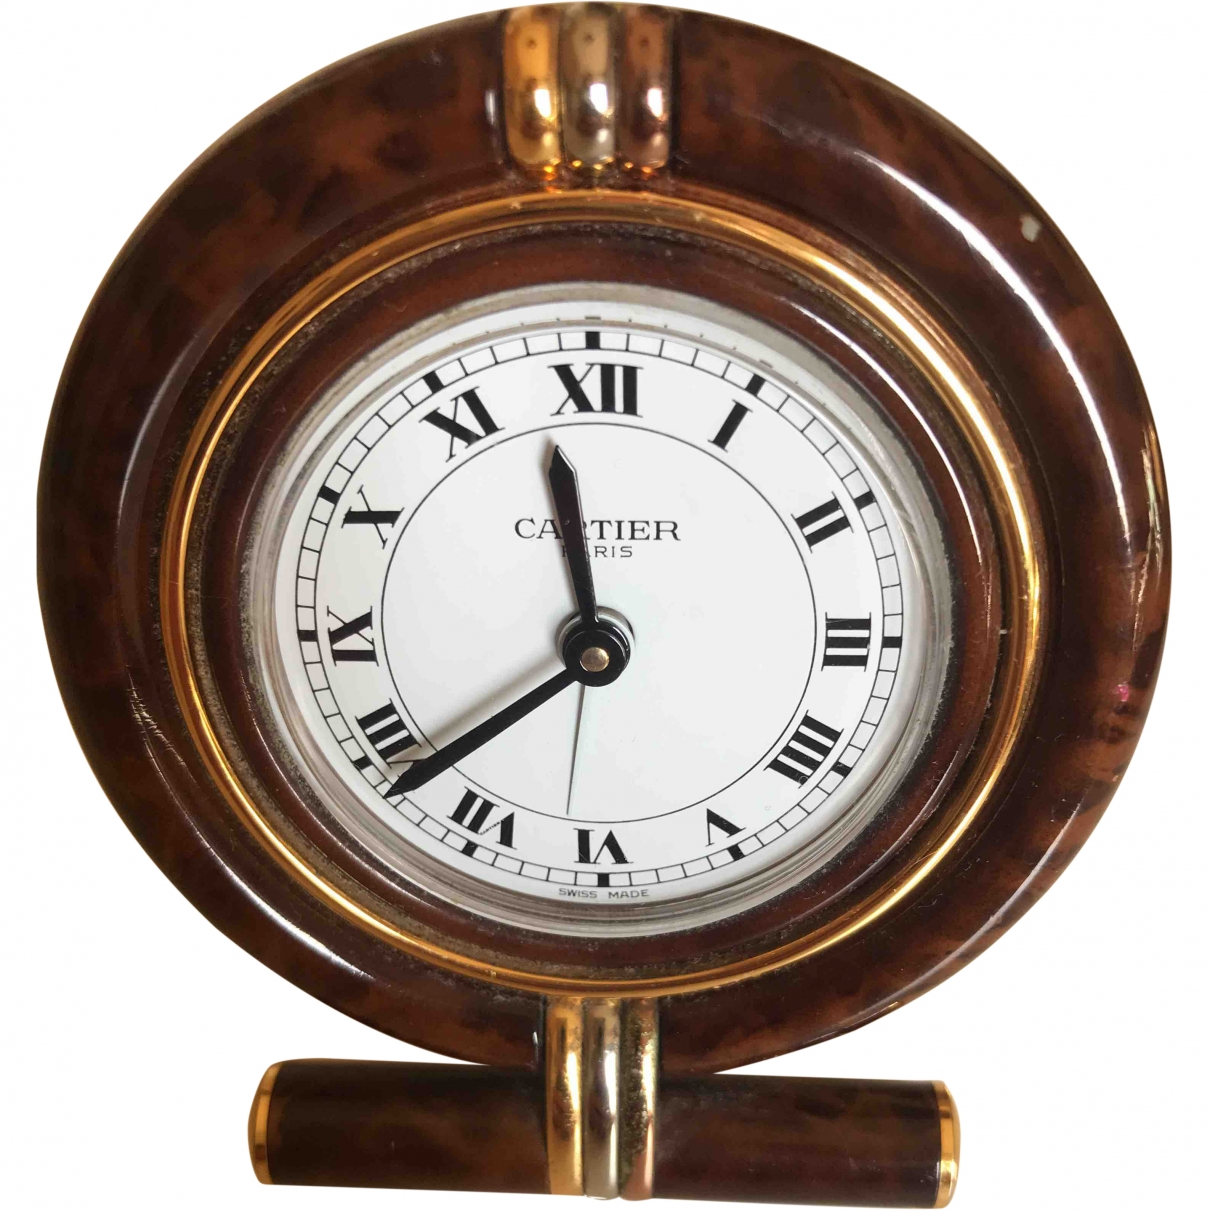 Cartier N Brown Gold plated Home decor for Life & Living N